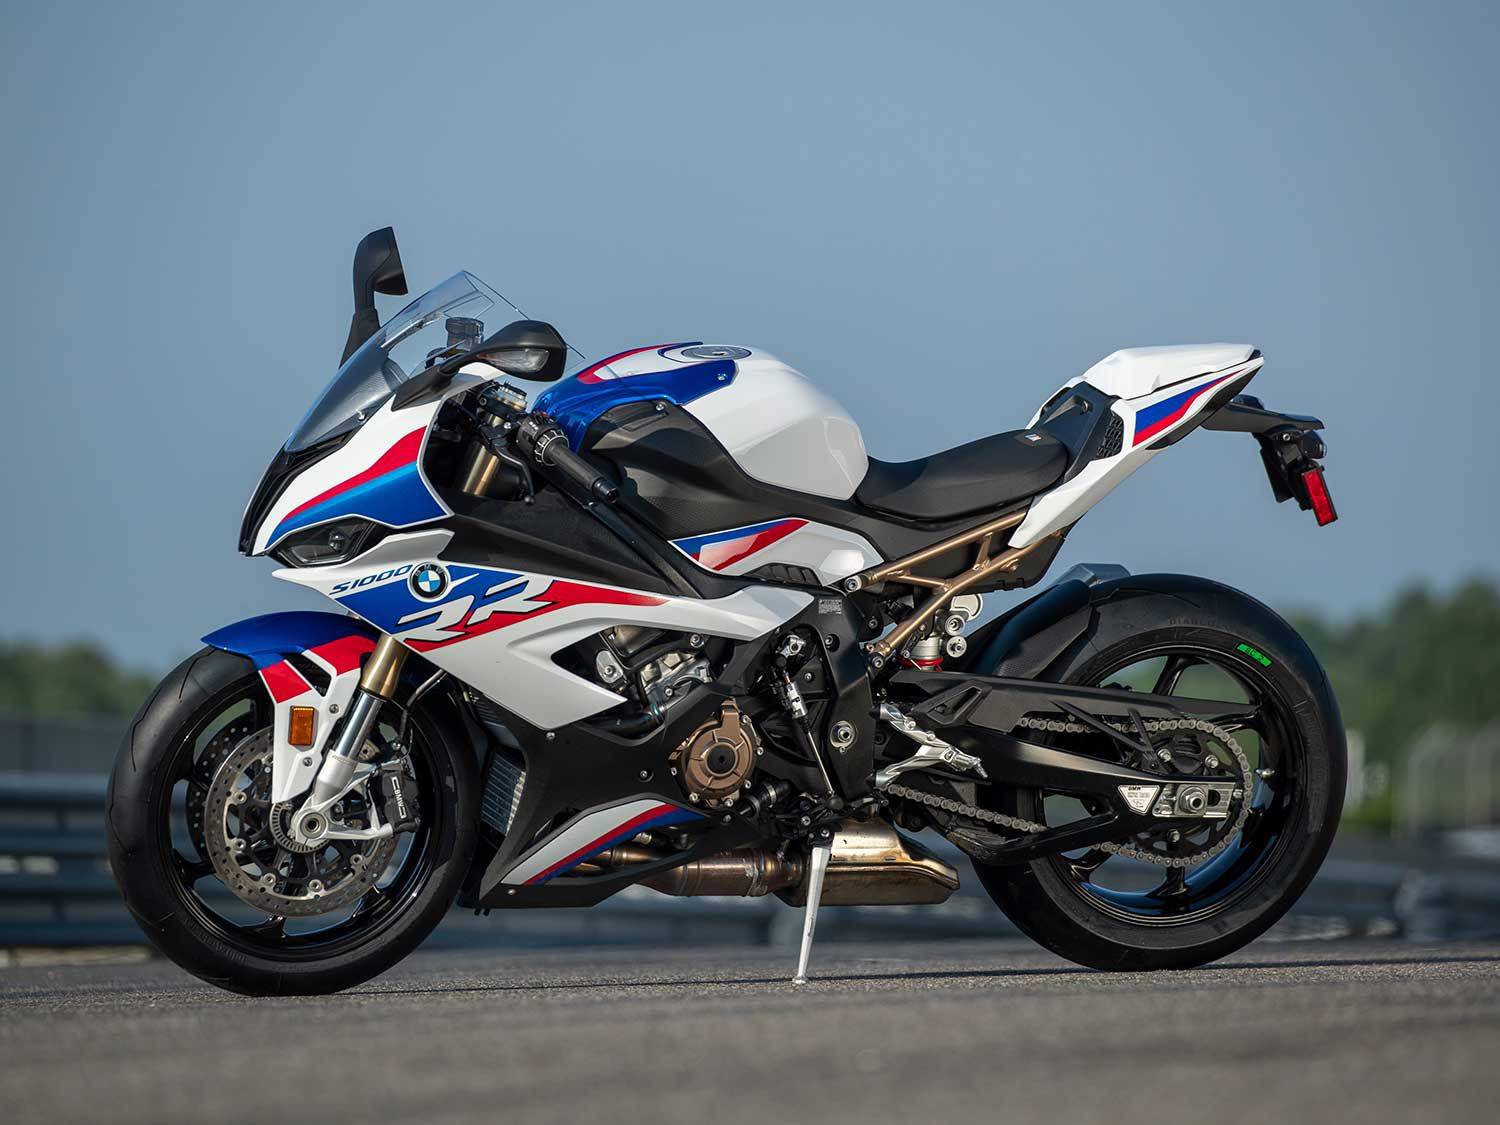 In this episode of <em>MC Commute</em> we go for a ride on BMW's fully overhauled S 1000 RR superbike.